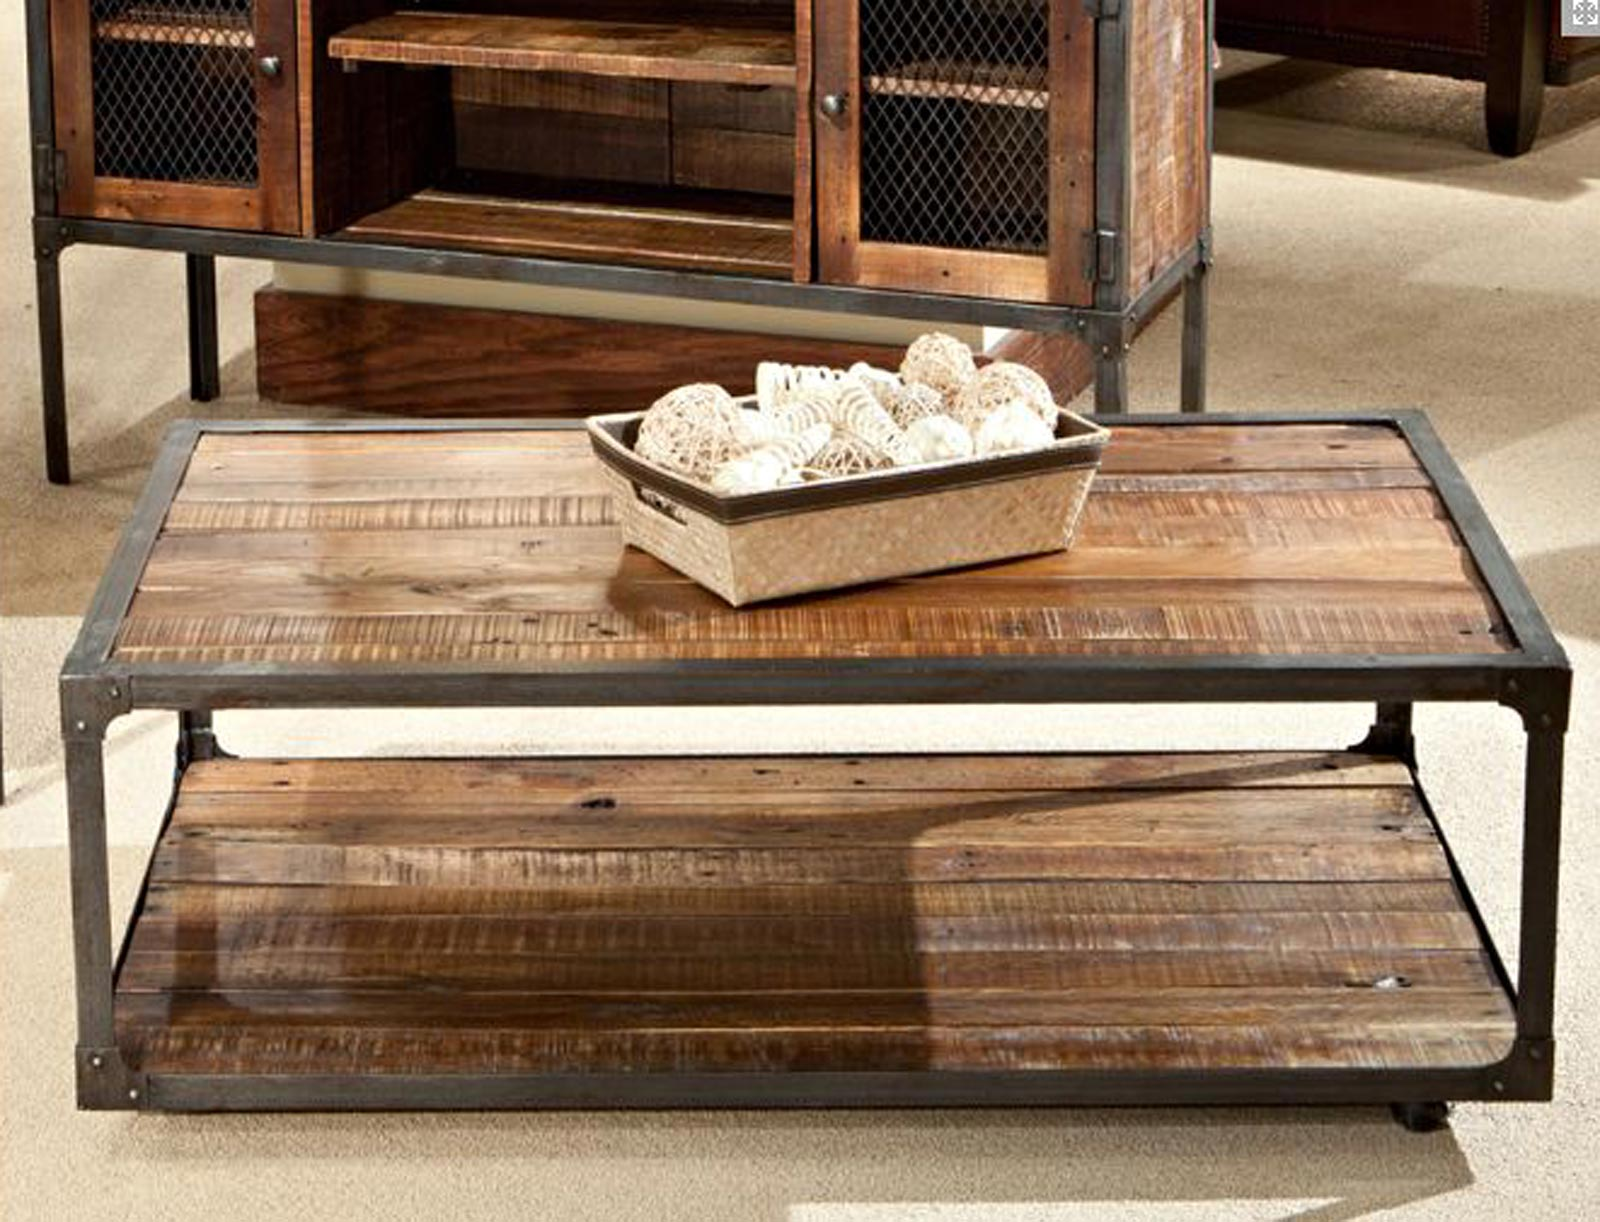 Framed Rustic Coffee Table Looks Rather Well Rustic